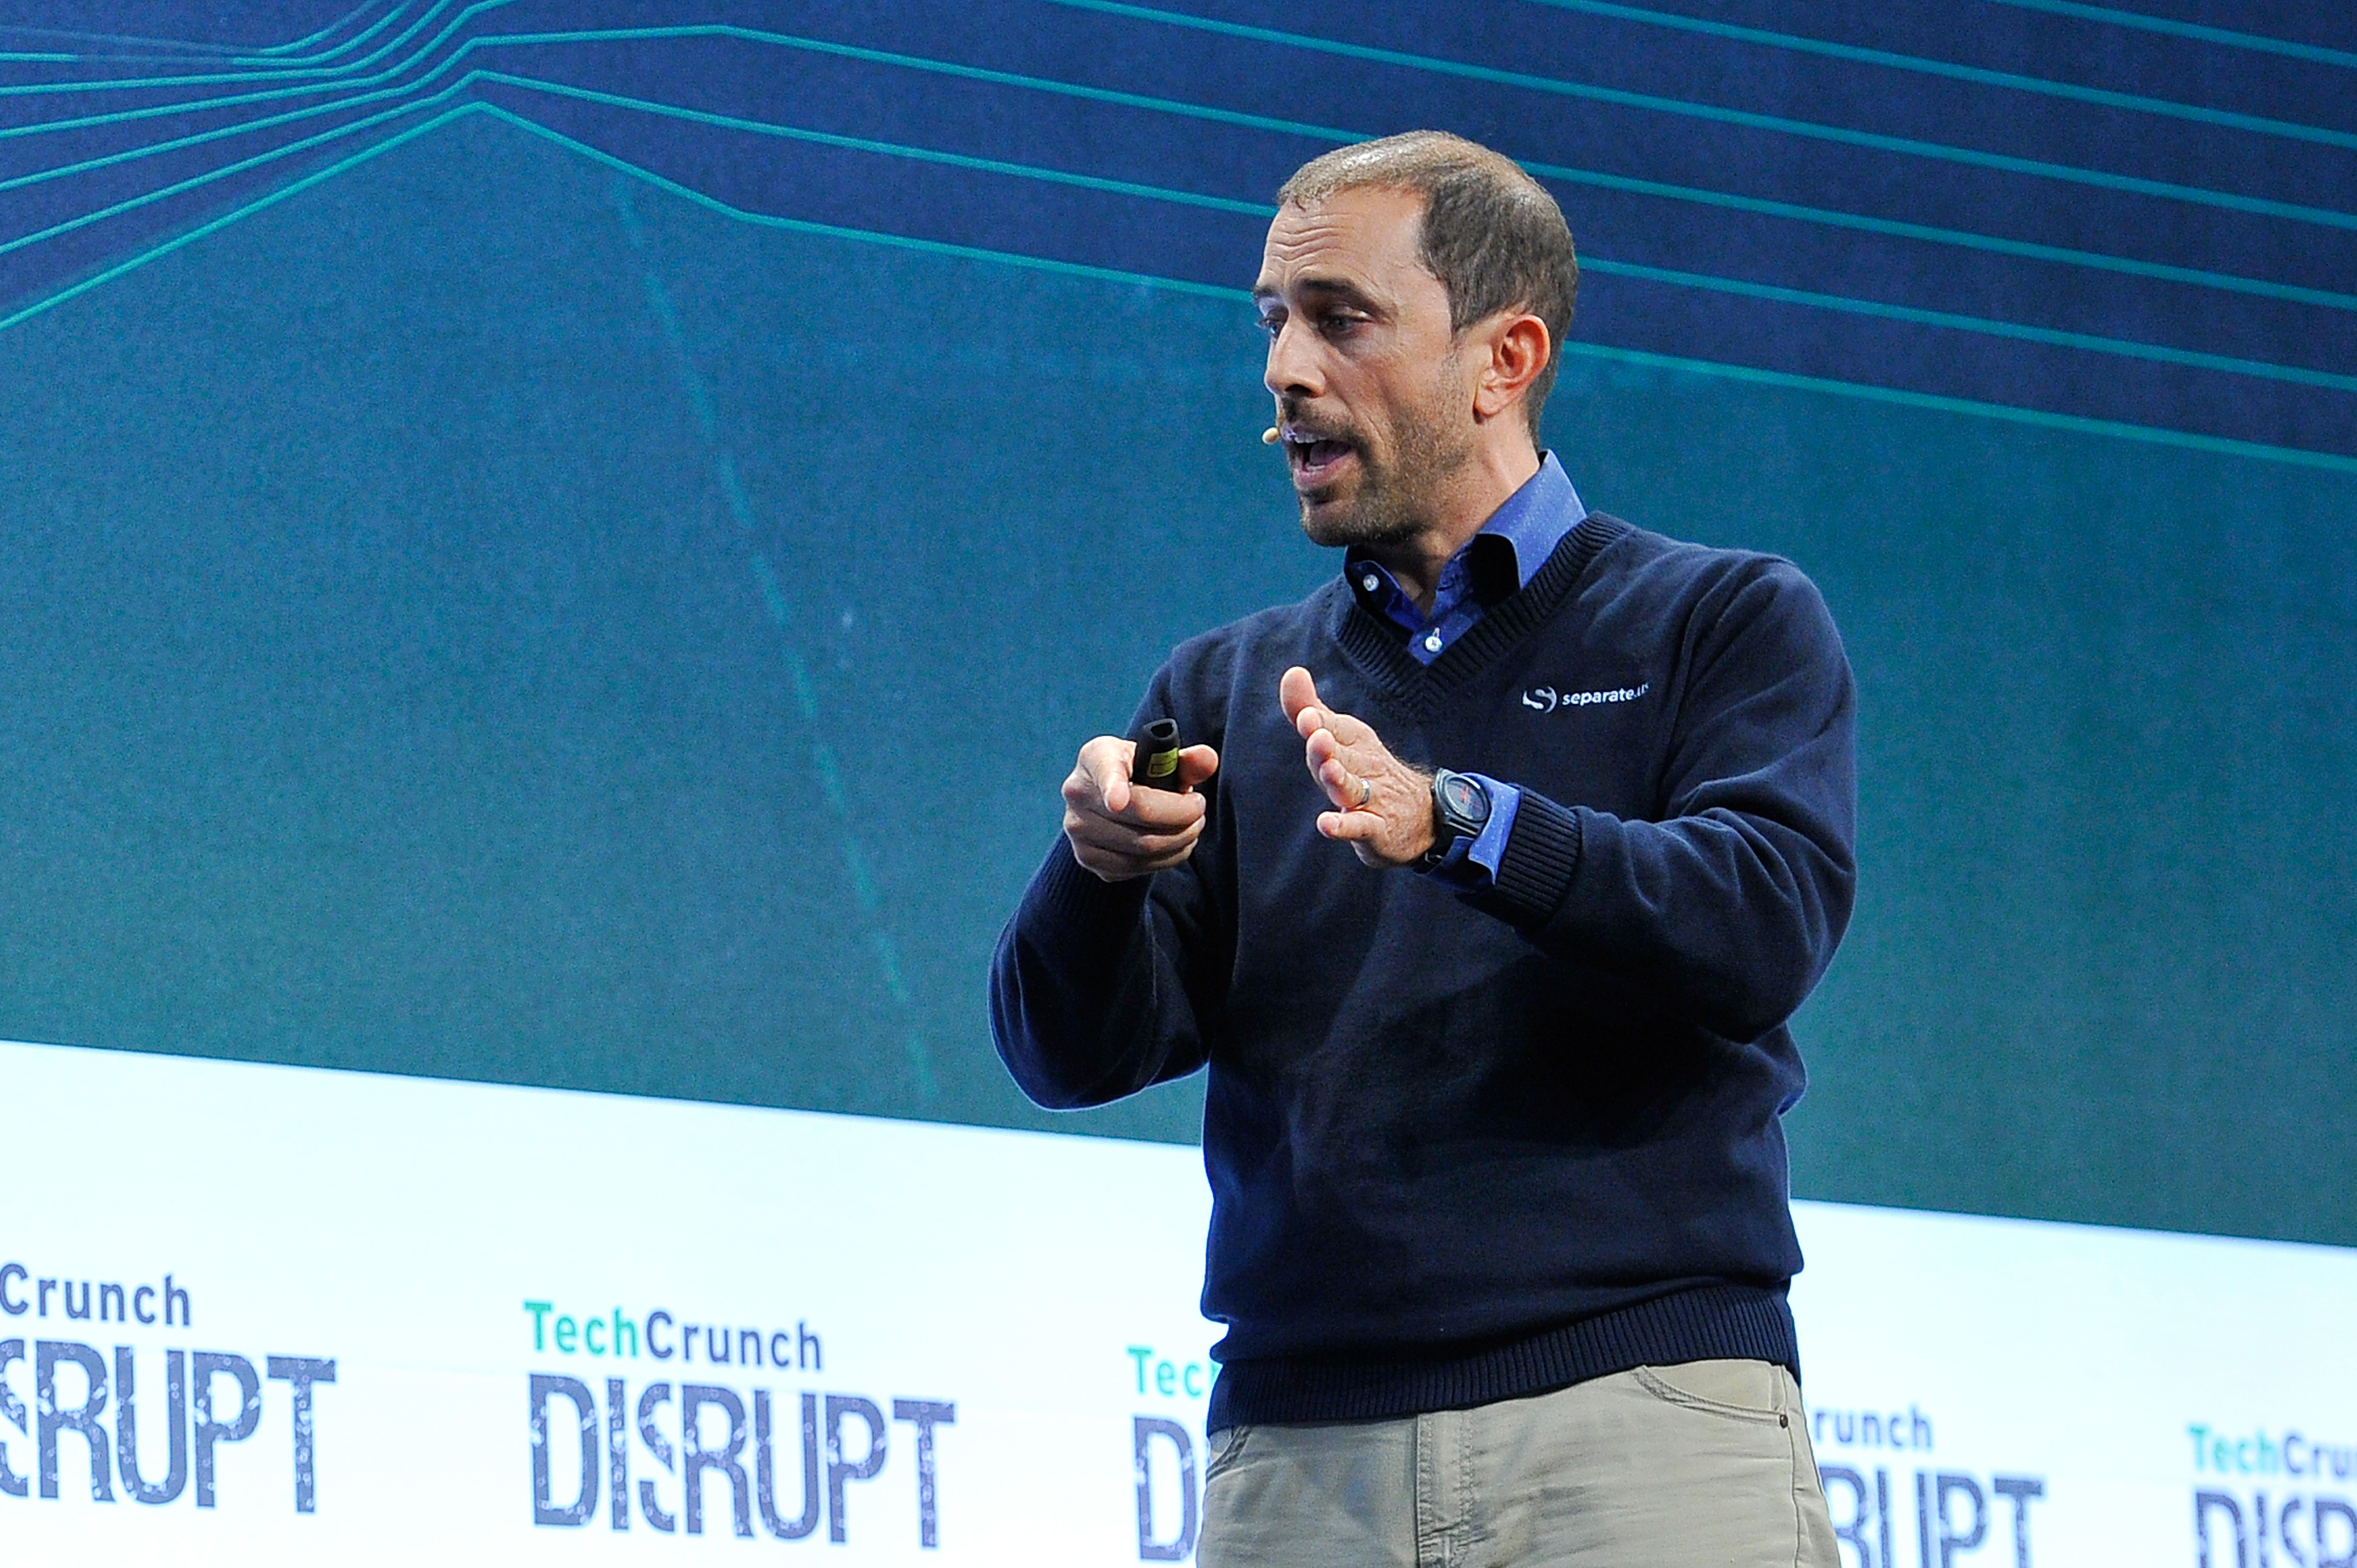 The group from separate.us presents to the judges onstage at TechCrunch Disrupt SF 2015 on Sept. 22, 2015 in San Francisco, Calif.